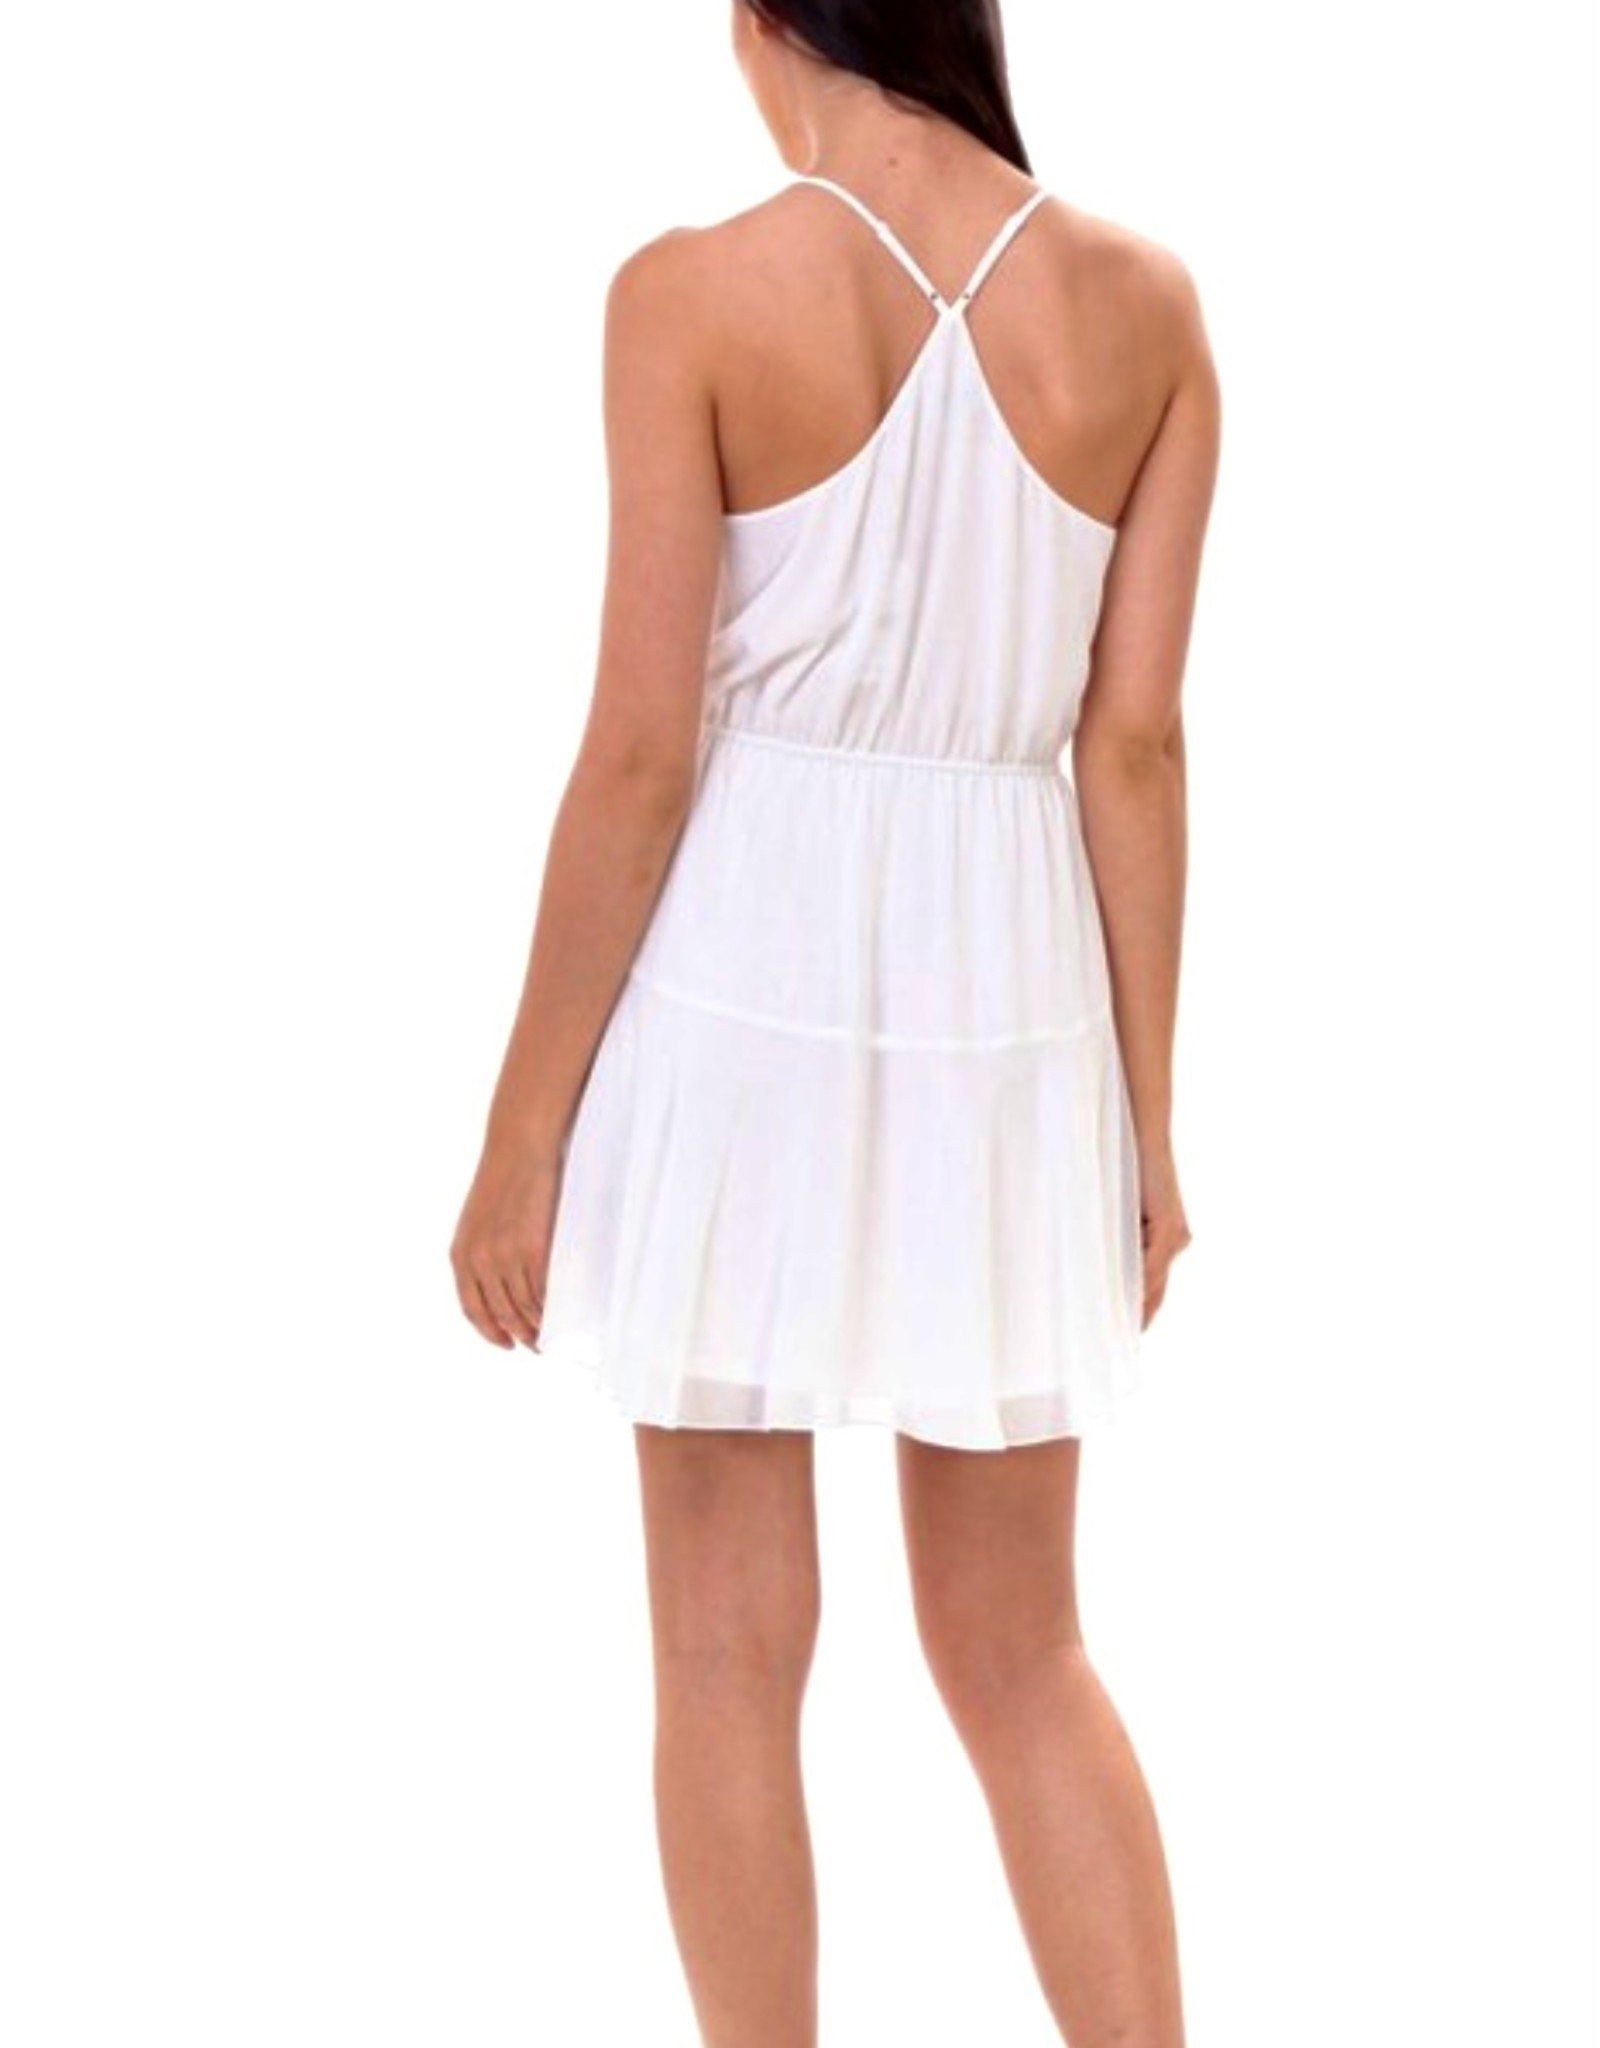 HUSH Flare racer back knee length dress